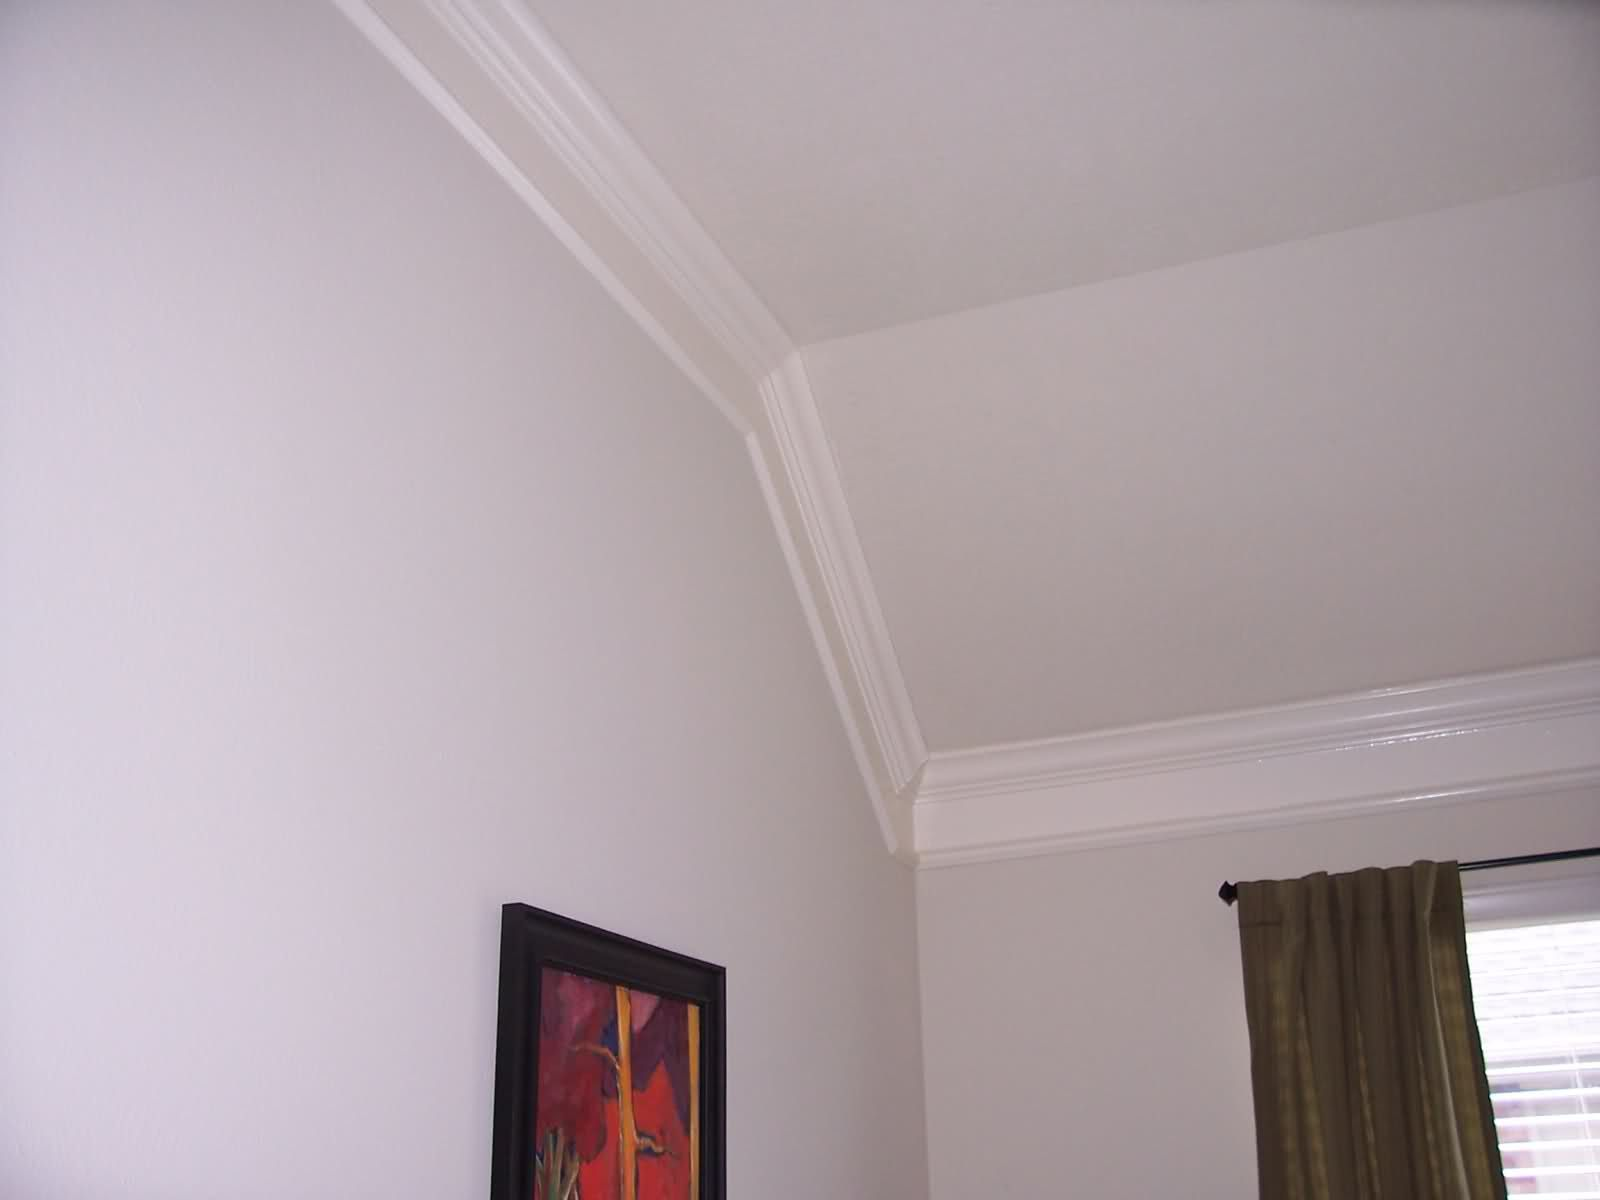 Chair Rail Vaulted Ceiling Part - 43: Crown Molding On Angled Ceiling | Crown Molding On Vaulted Ceilings In Off  Topic Forum